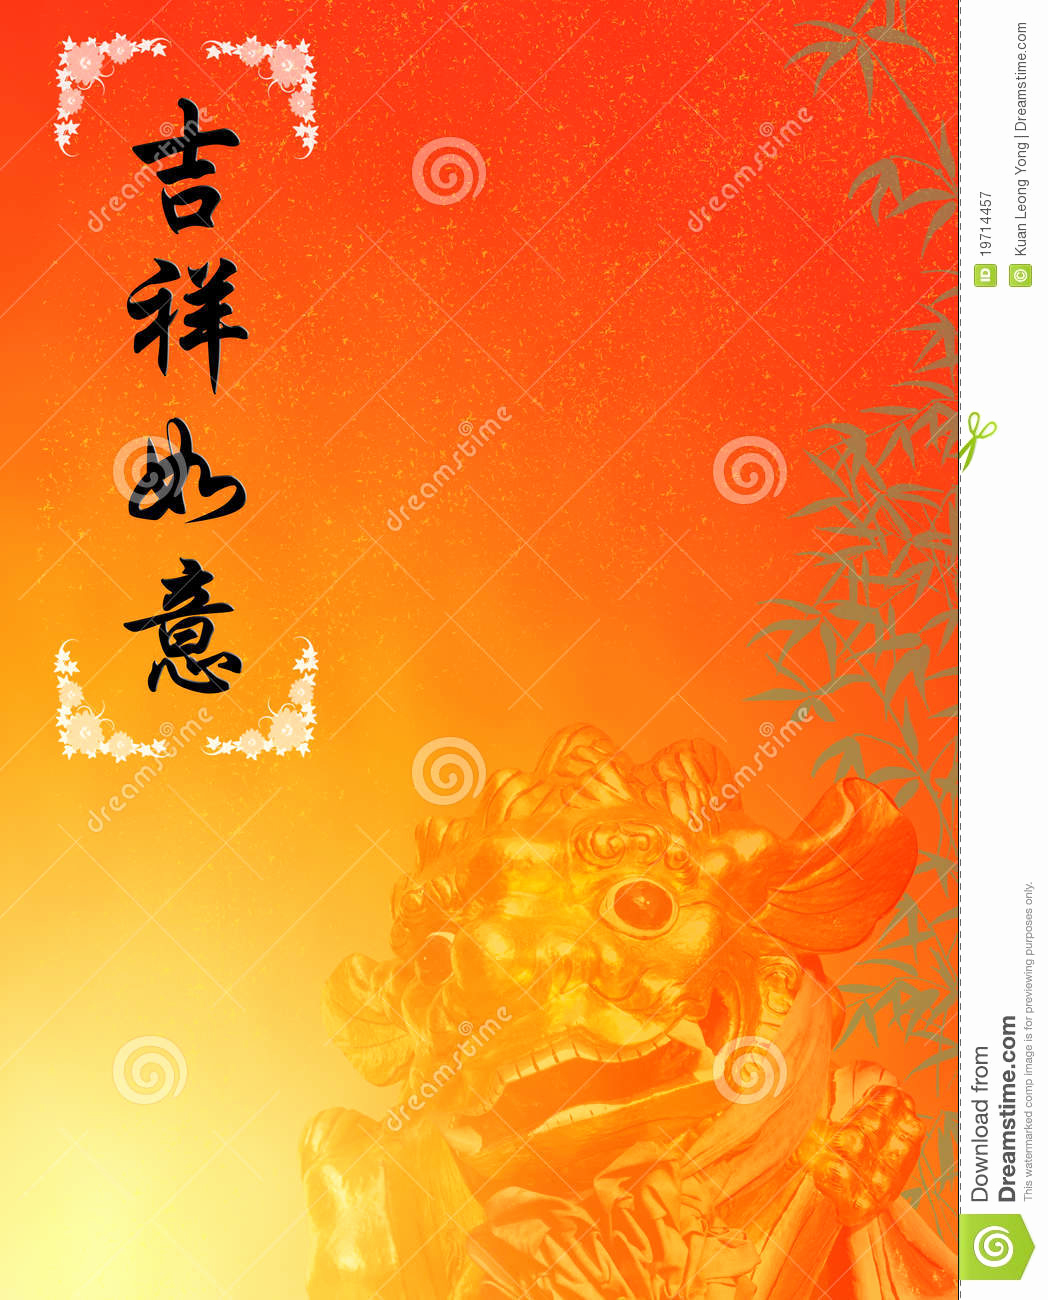 New Year Card Template Elegant Chinese New Year Card Template Stock Illustration